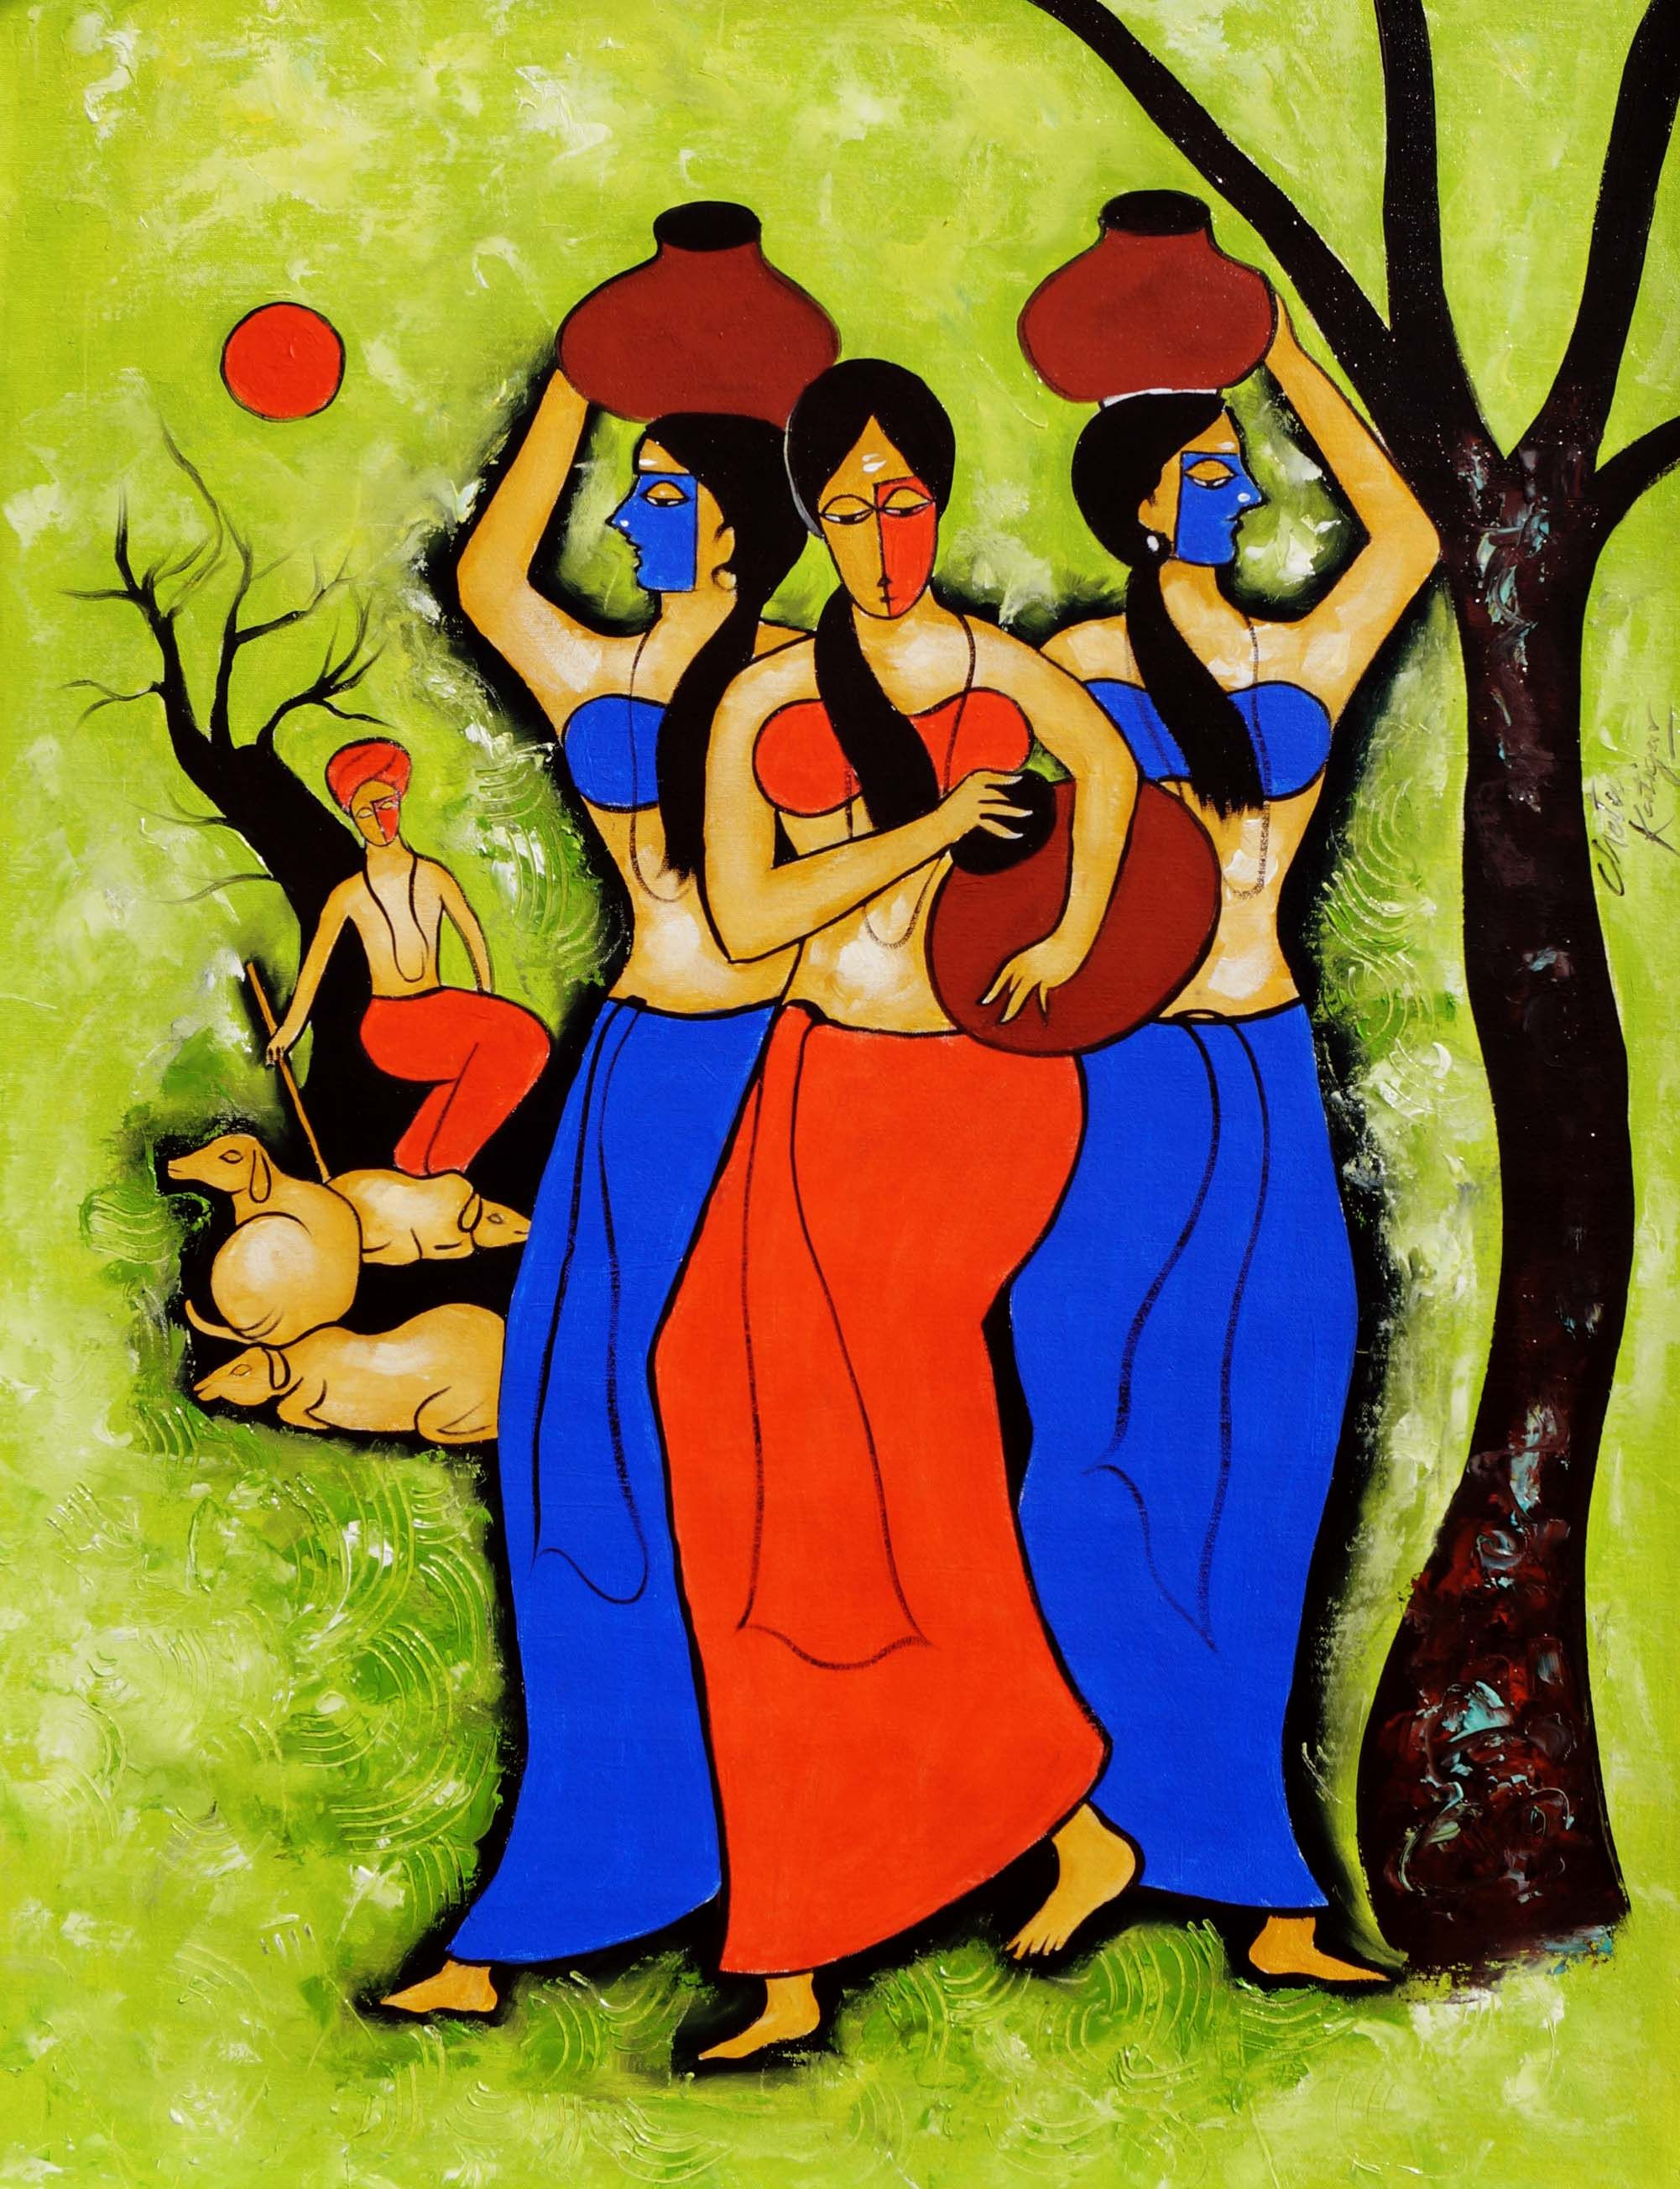 Here in this art work the artist painted women carrying